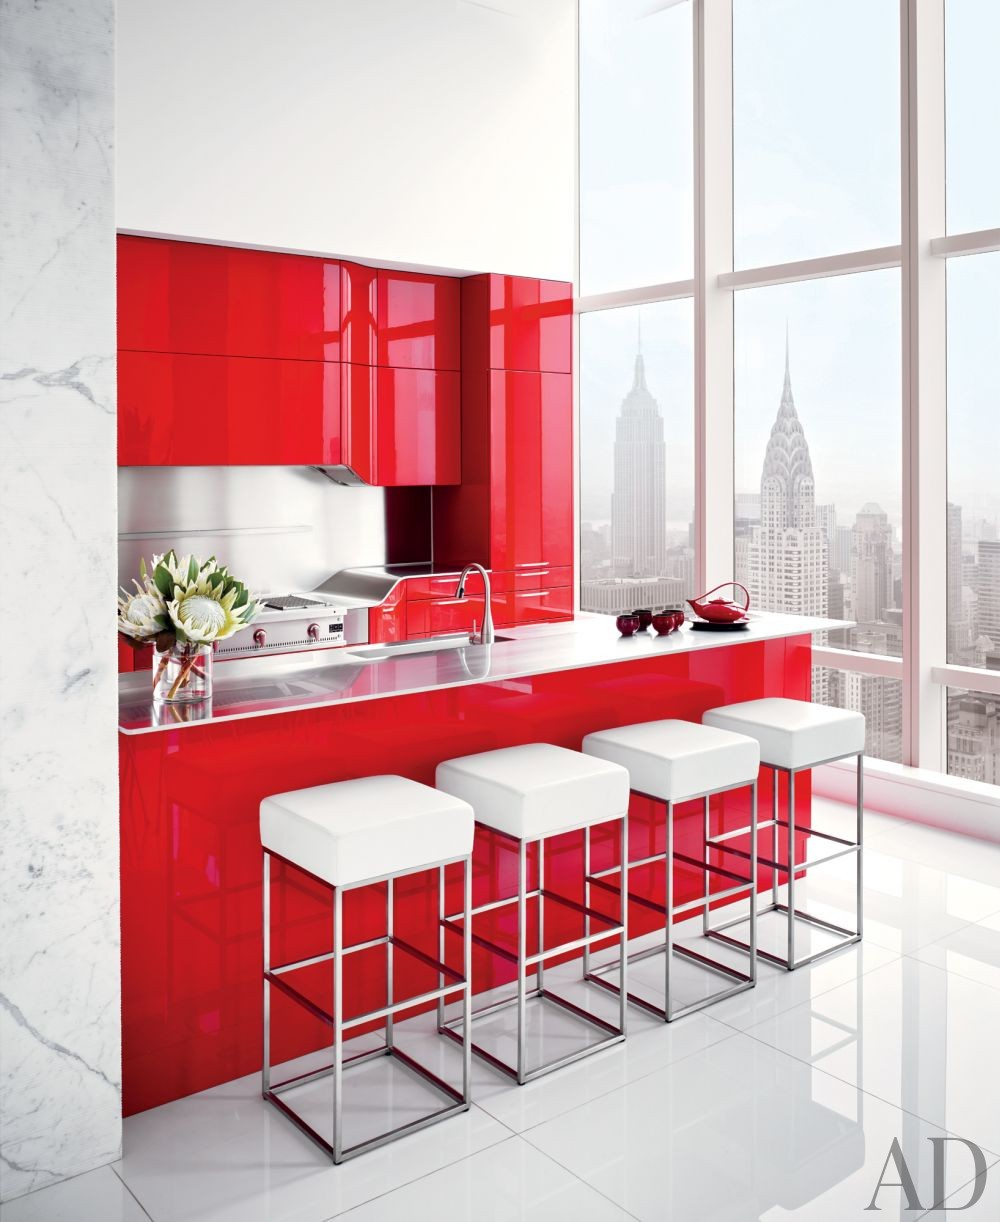 Contemporary Kitchen by ODA-Architecture and ODA-Architecture in New York, New York